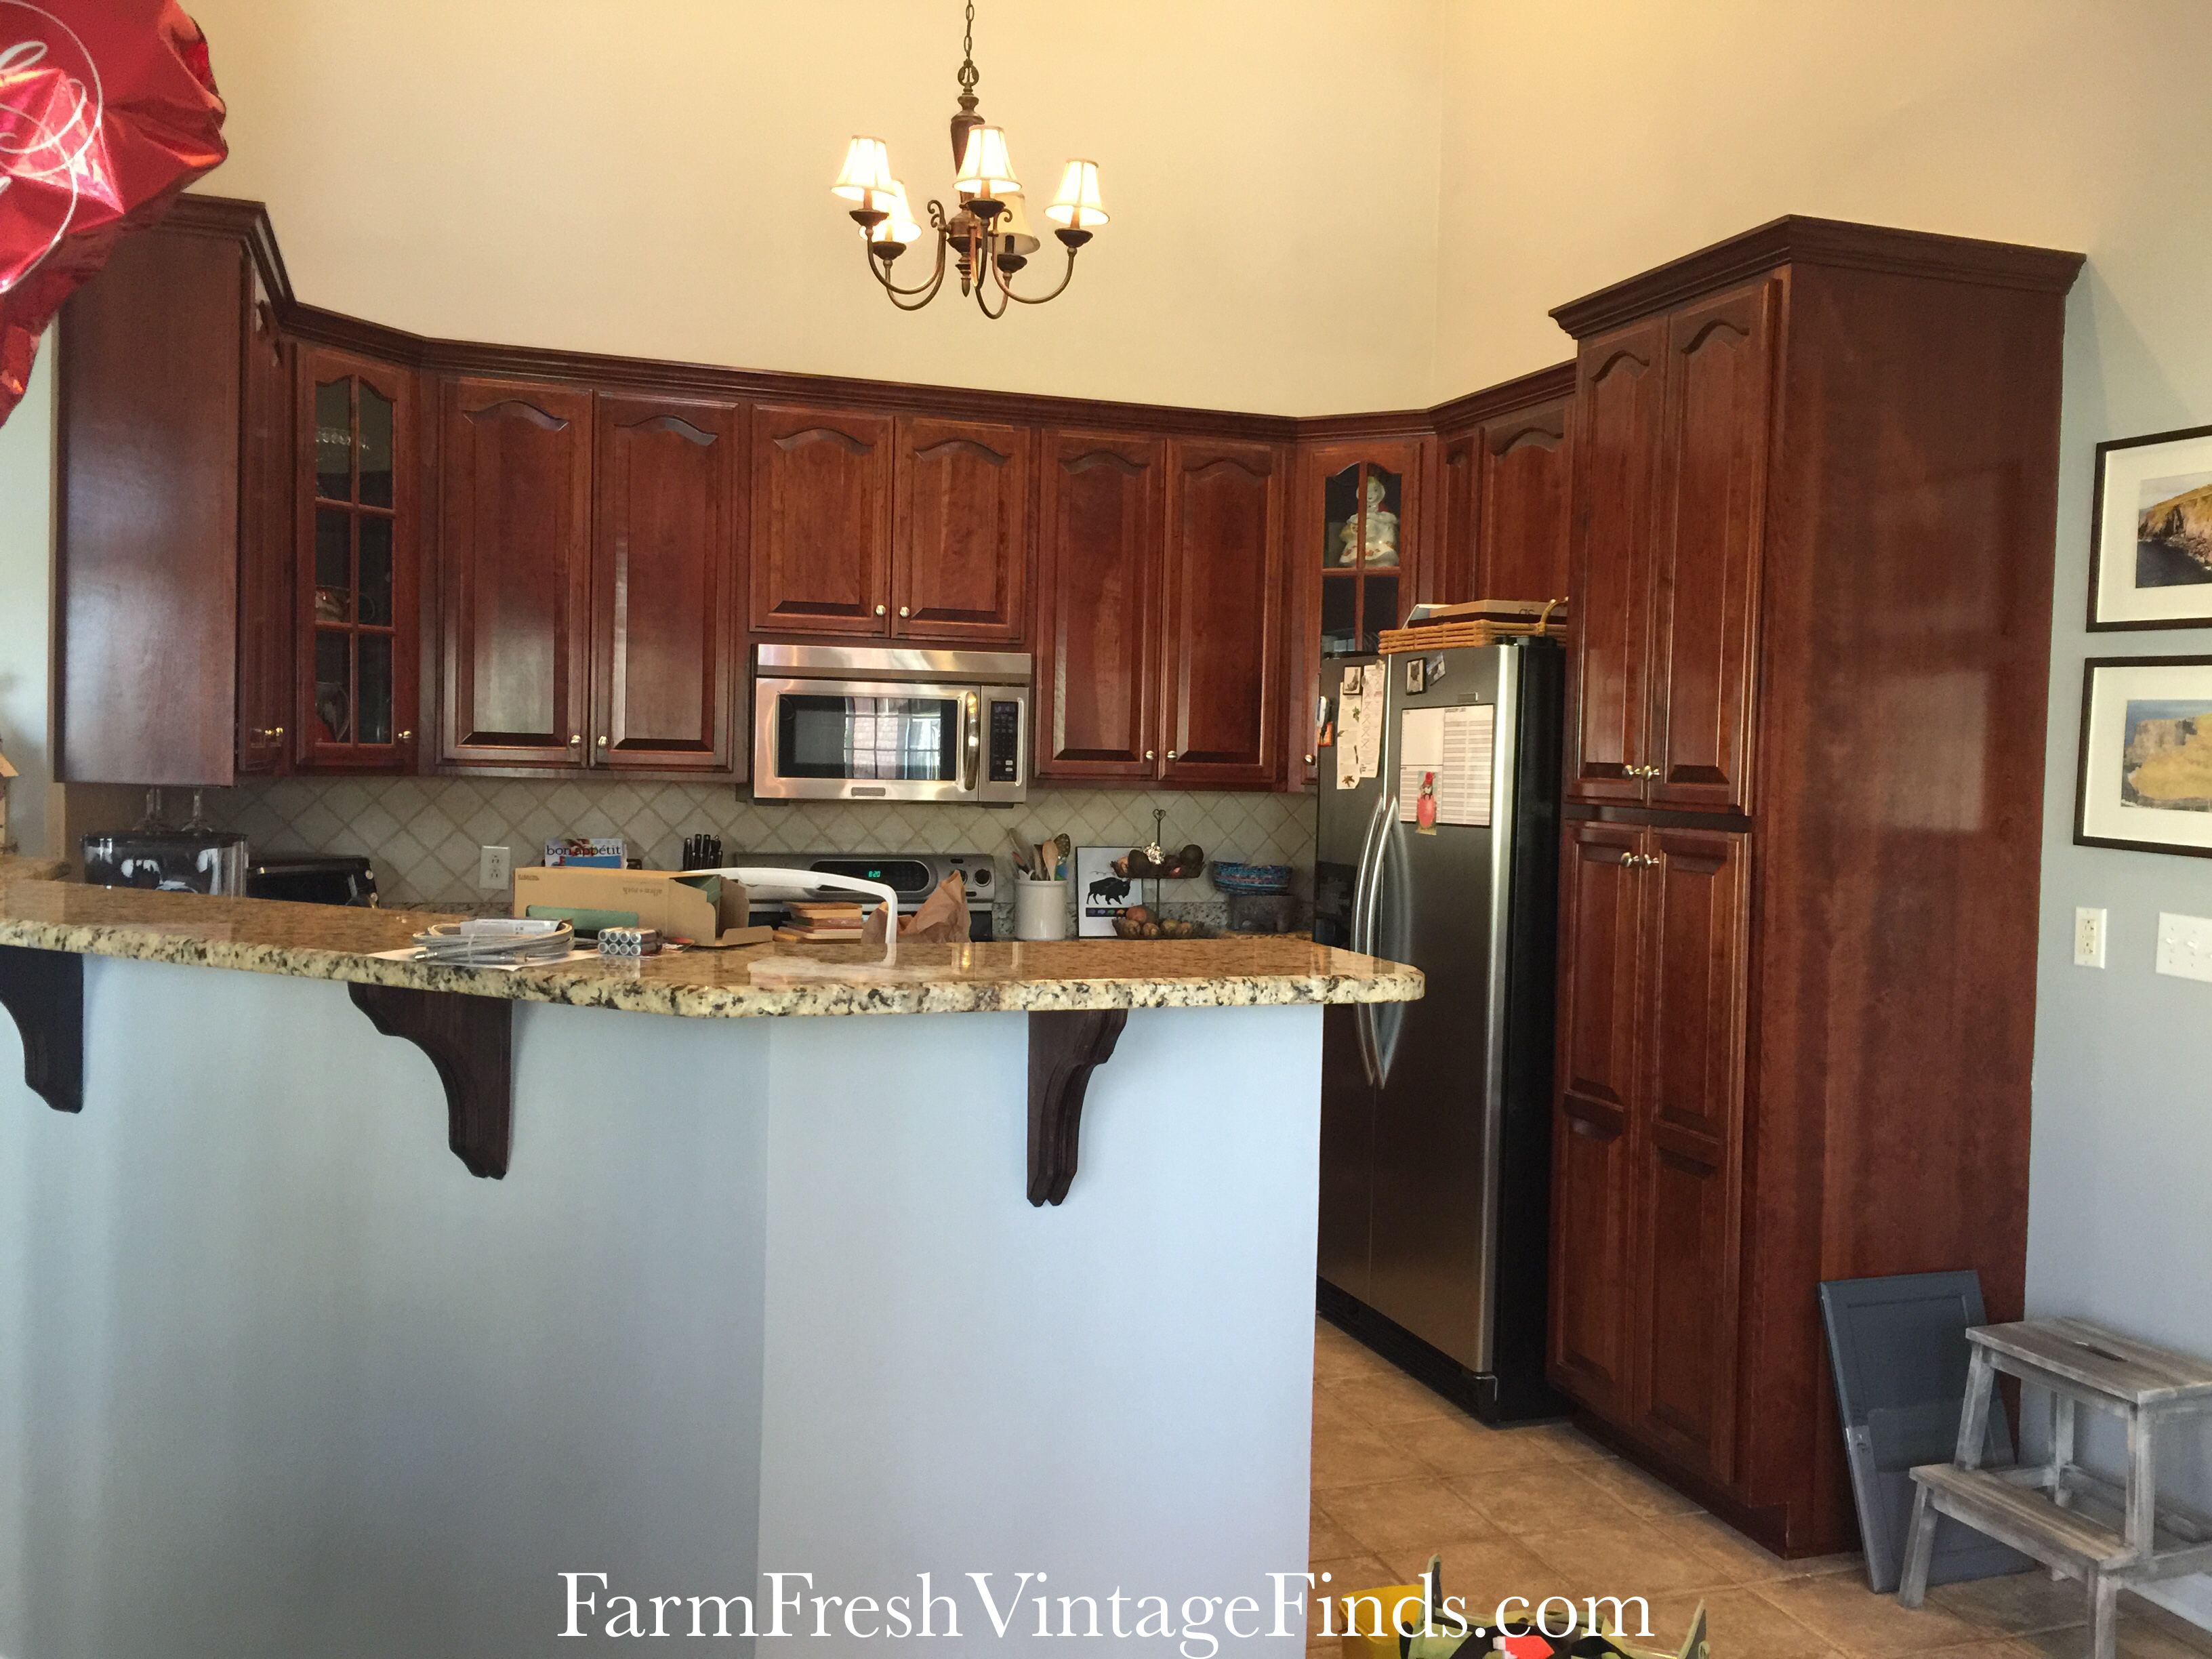 Painting Kitchen Cabinets with General Finishes Milk Paint Farm